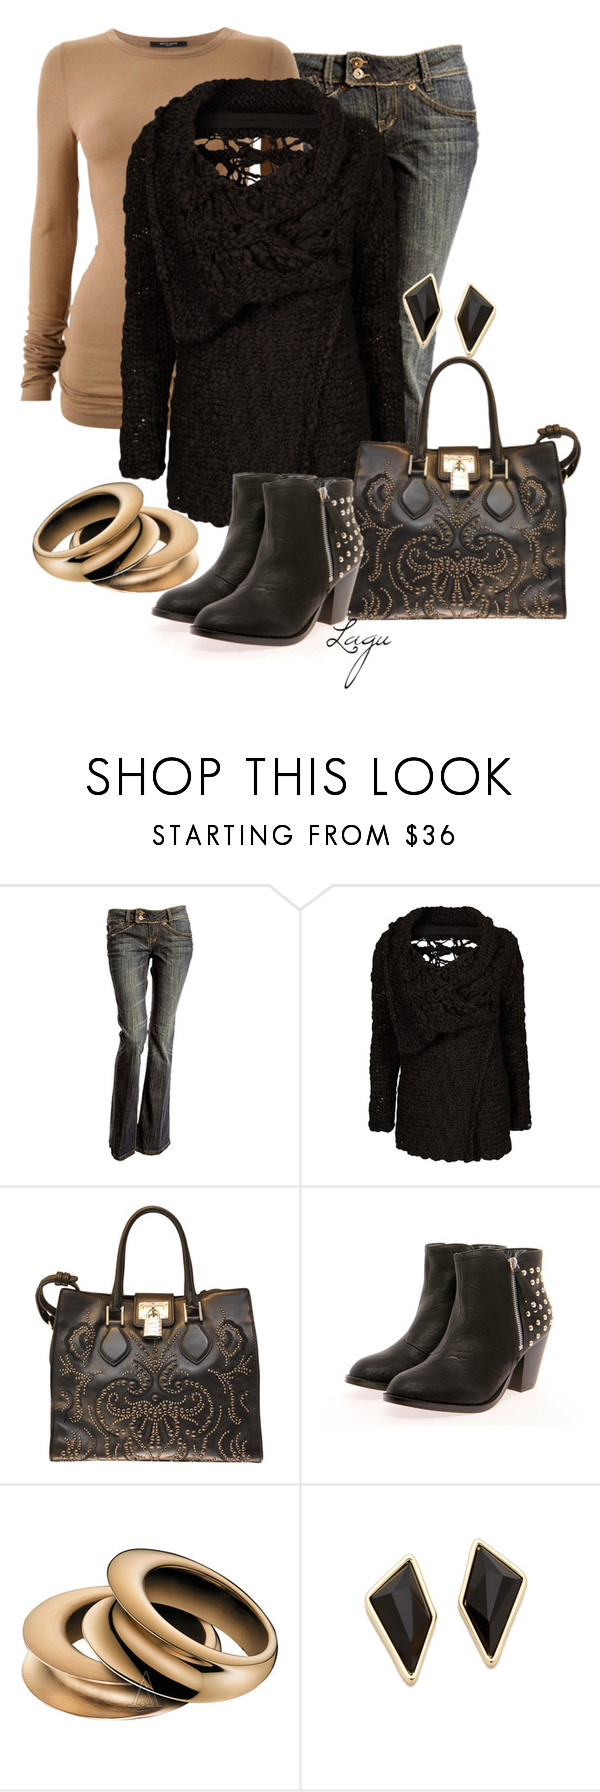 """""""Sweater and Studs"""" by lagu ❤ liked on Polyvore featuring Bruuns Bazaar, Replay, Roberto Cavalli, Calvin Klein and Belle Noel by Kim Kardashian"""